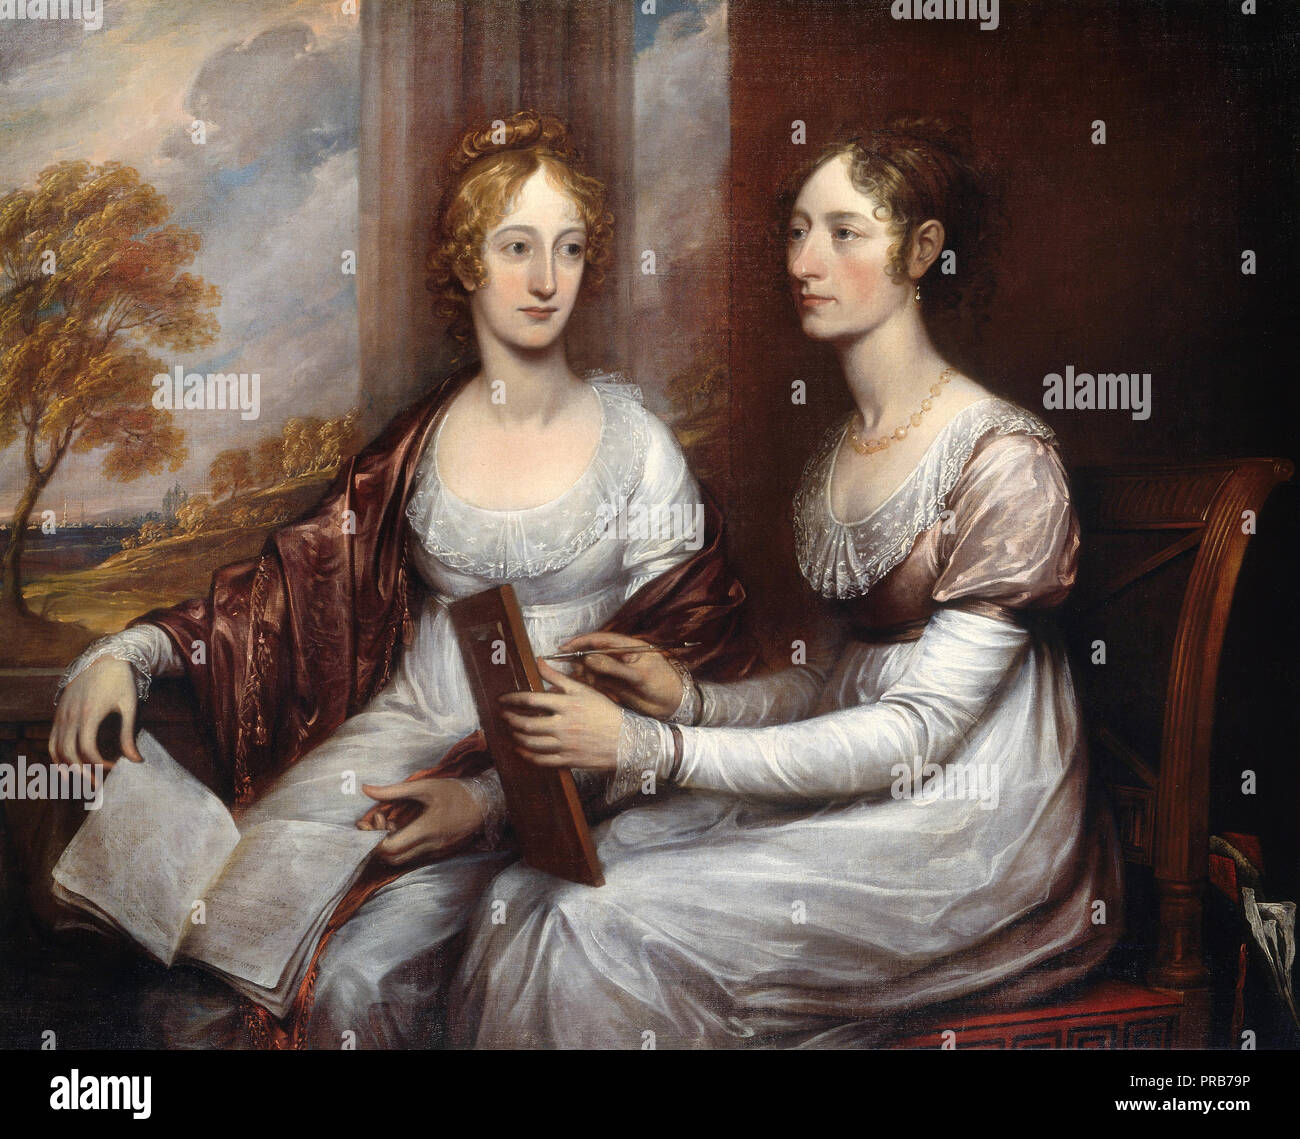 John Trumbull, The Misses Mary and Hannah Murray 1806 Oil on canvas, Smithsonian American Art Museum, Washington, D.C., USA. - Stock Image